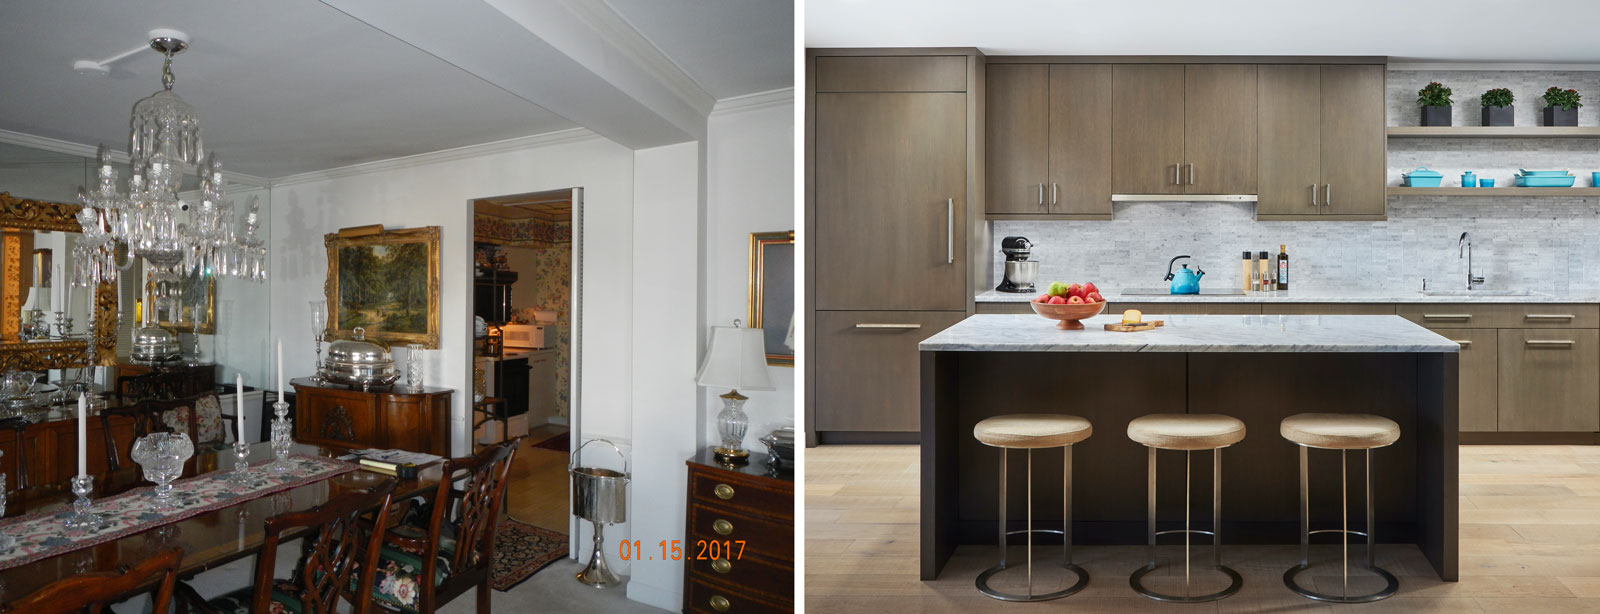 condo remodel before and after